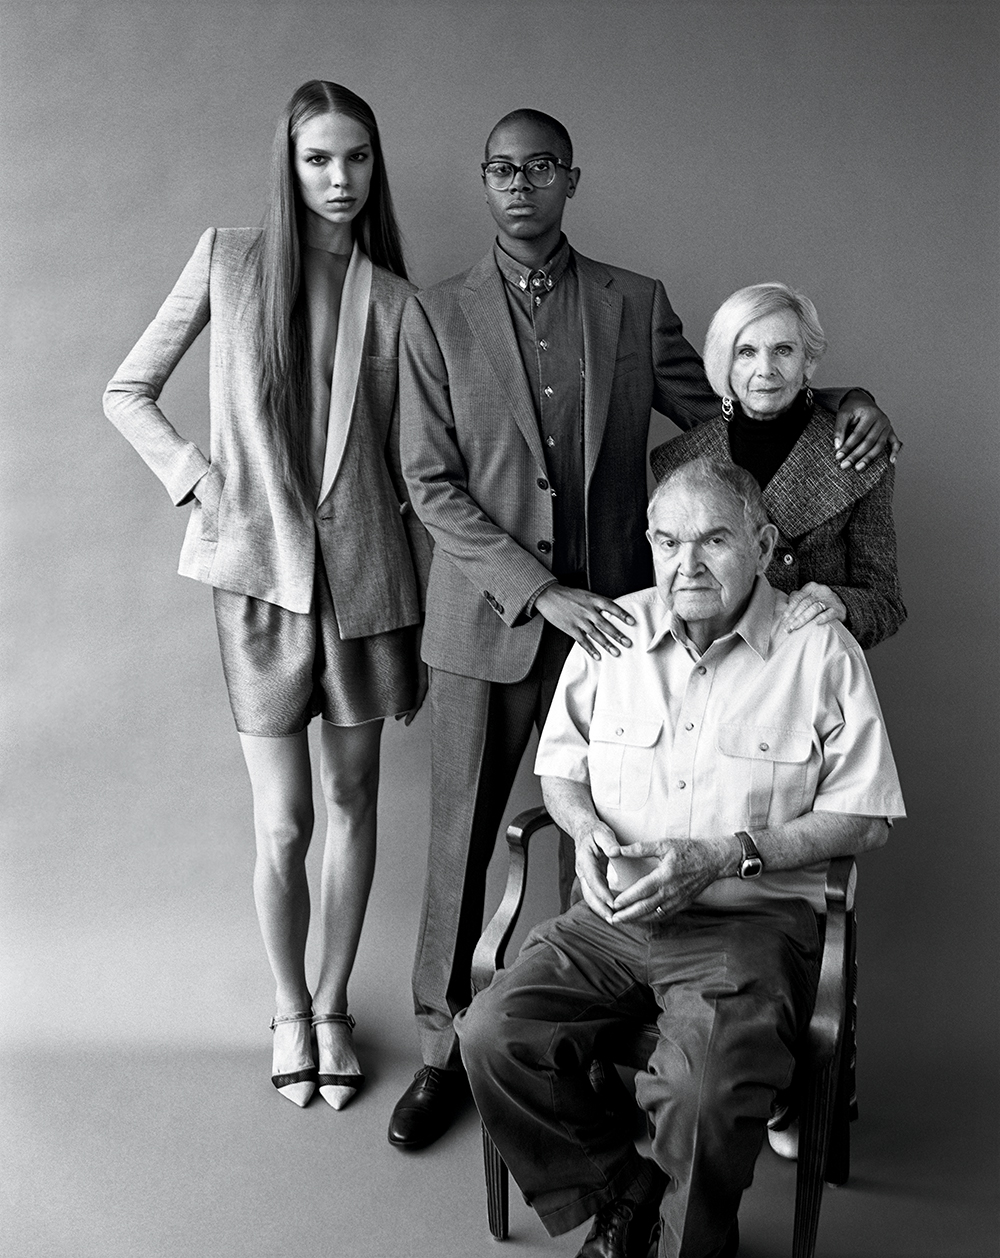 valentijn-on-left-wears-giorgio-armani-ryley-center-wears-armani-collezioni-leonard-and-gloria-wear-their-own-clothes-photo-c2a9-bruce-weber